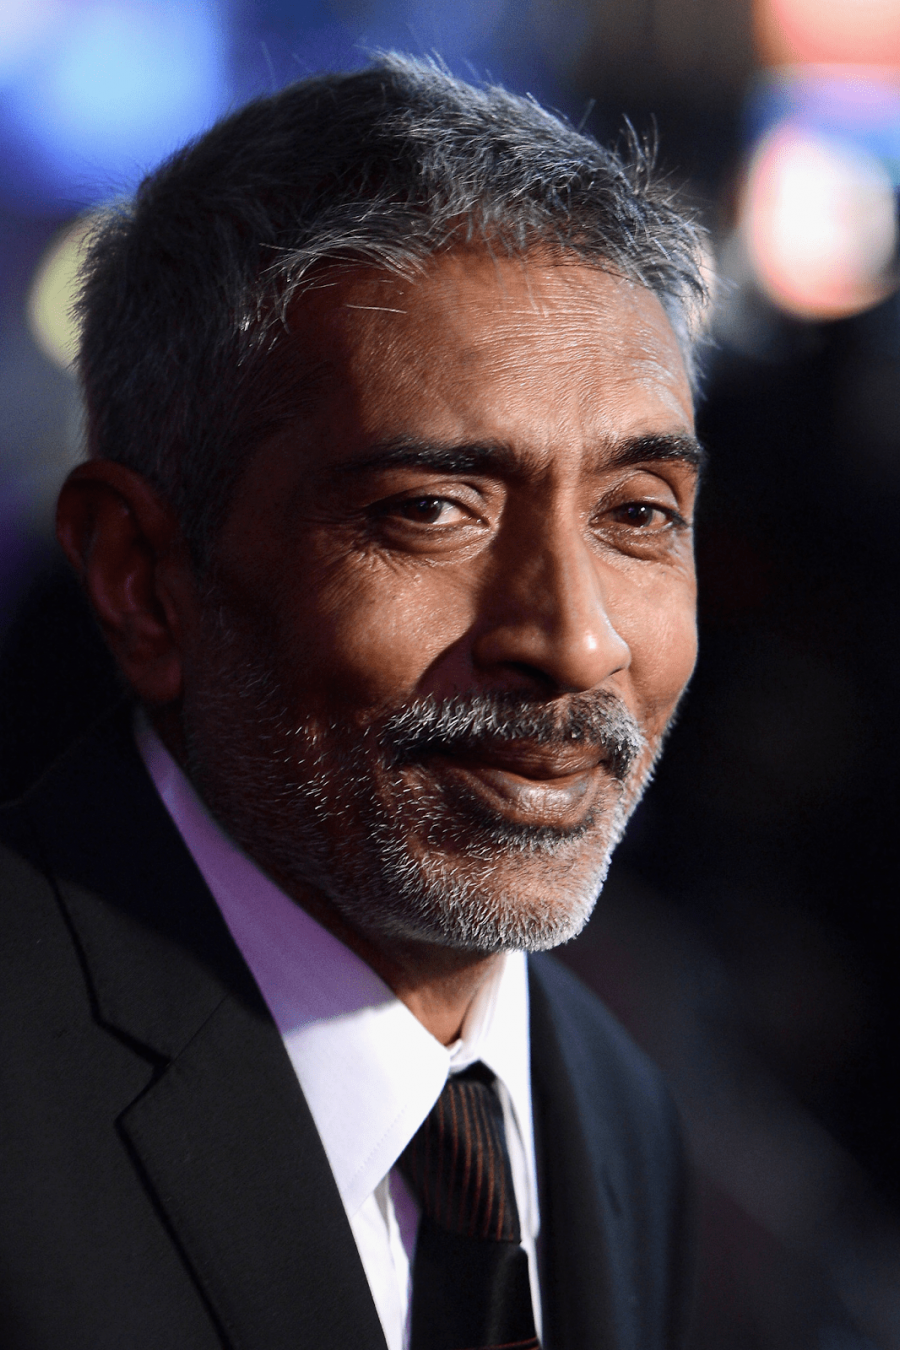 Hard-Hitting Storylines to Ace Direction - Here's Prakash Jha's #MyMarkMySignature Story